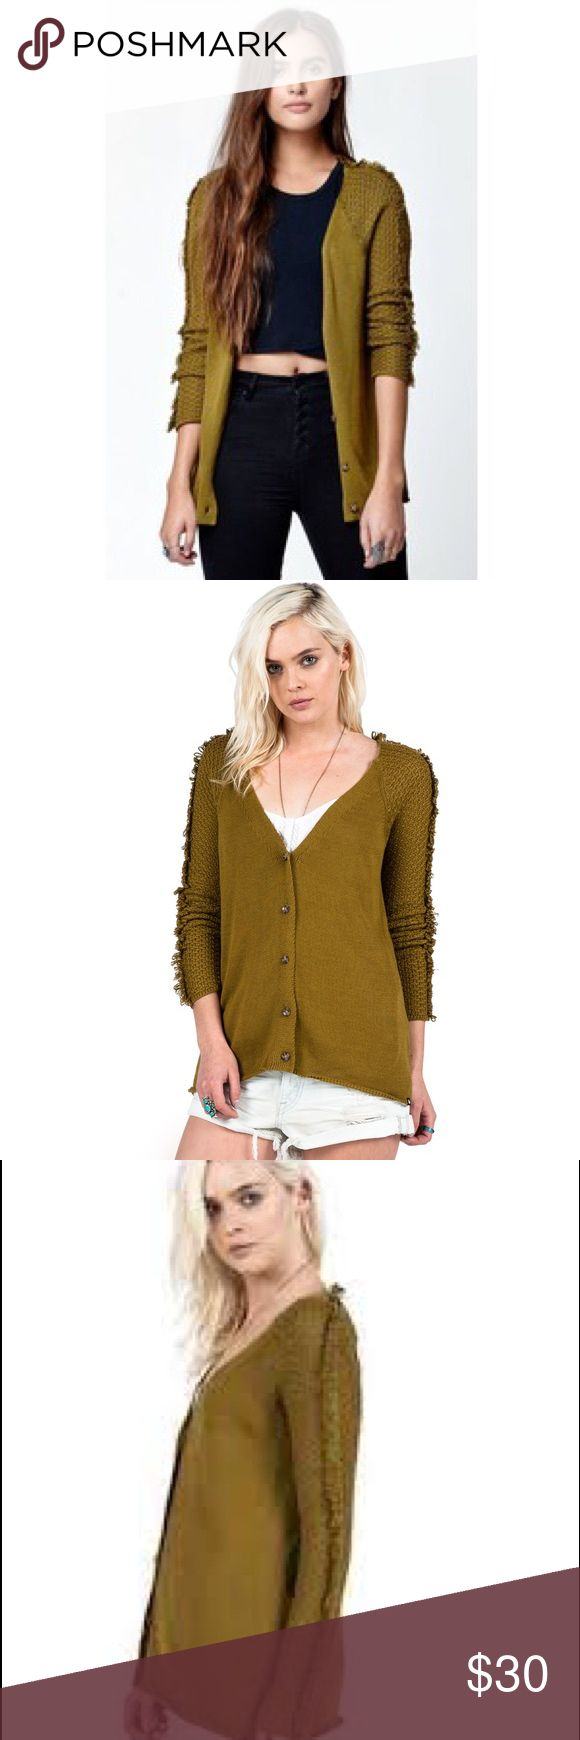 Volcom Hazy Day Olive Green Cardigan Small Olive Green Cardigan by volcom with fringe detail on shoulder worn only a few times Volcom Sweaters Cardigans